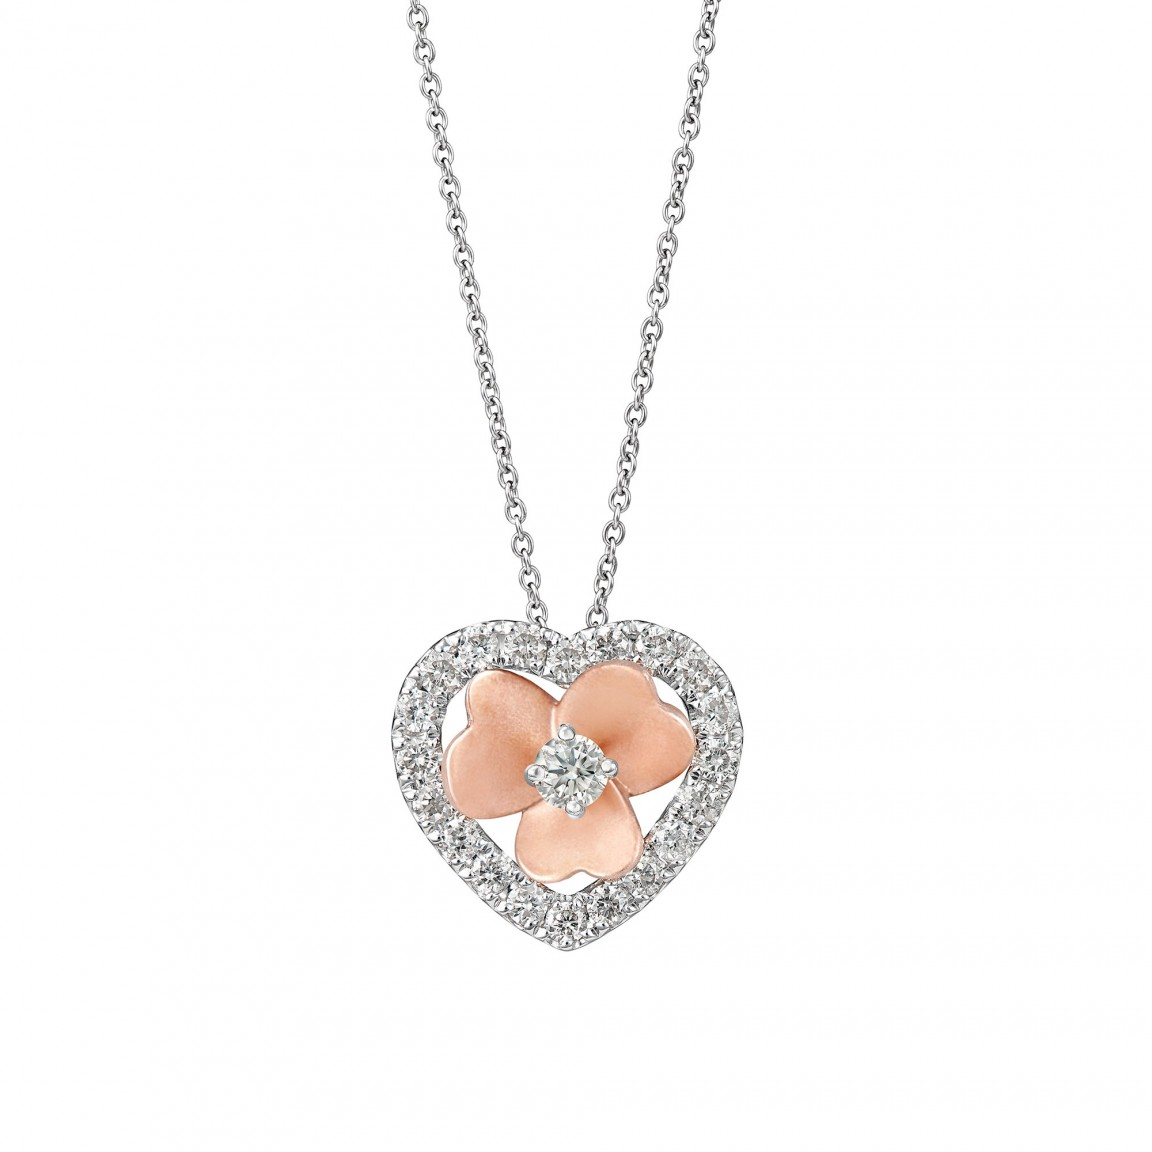 Soleluna AGLAIA LoveStruck Diamond Pendant Necklace